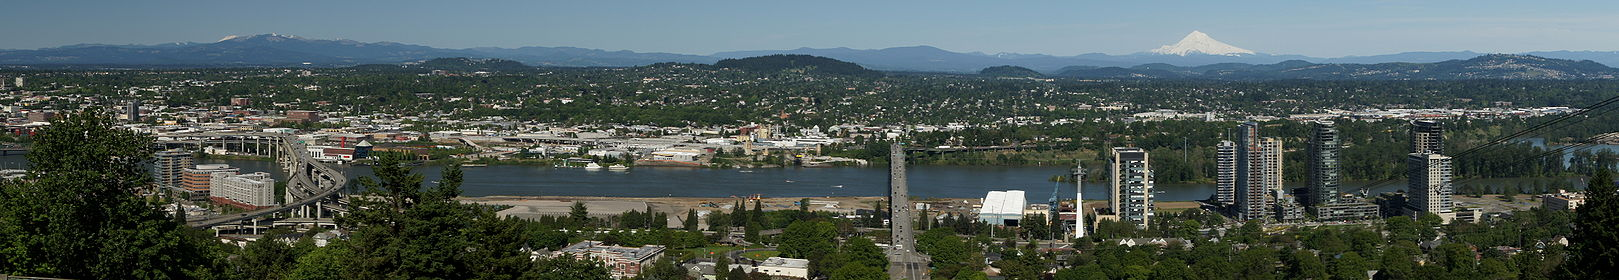 Portland panorama by Sam Churchill.jpg